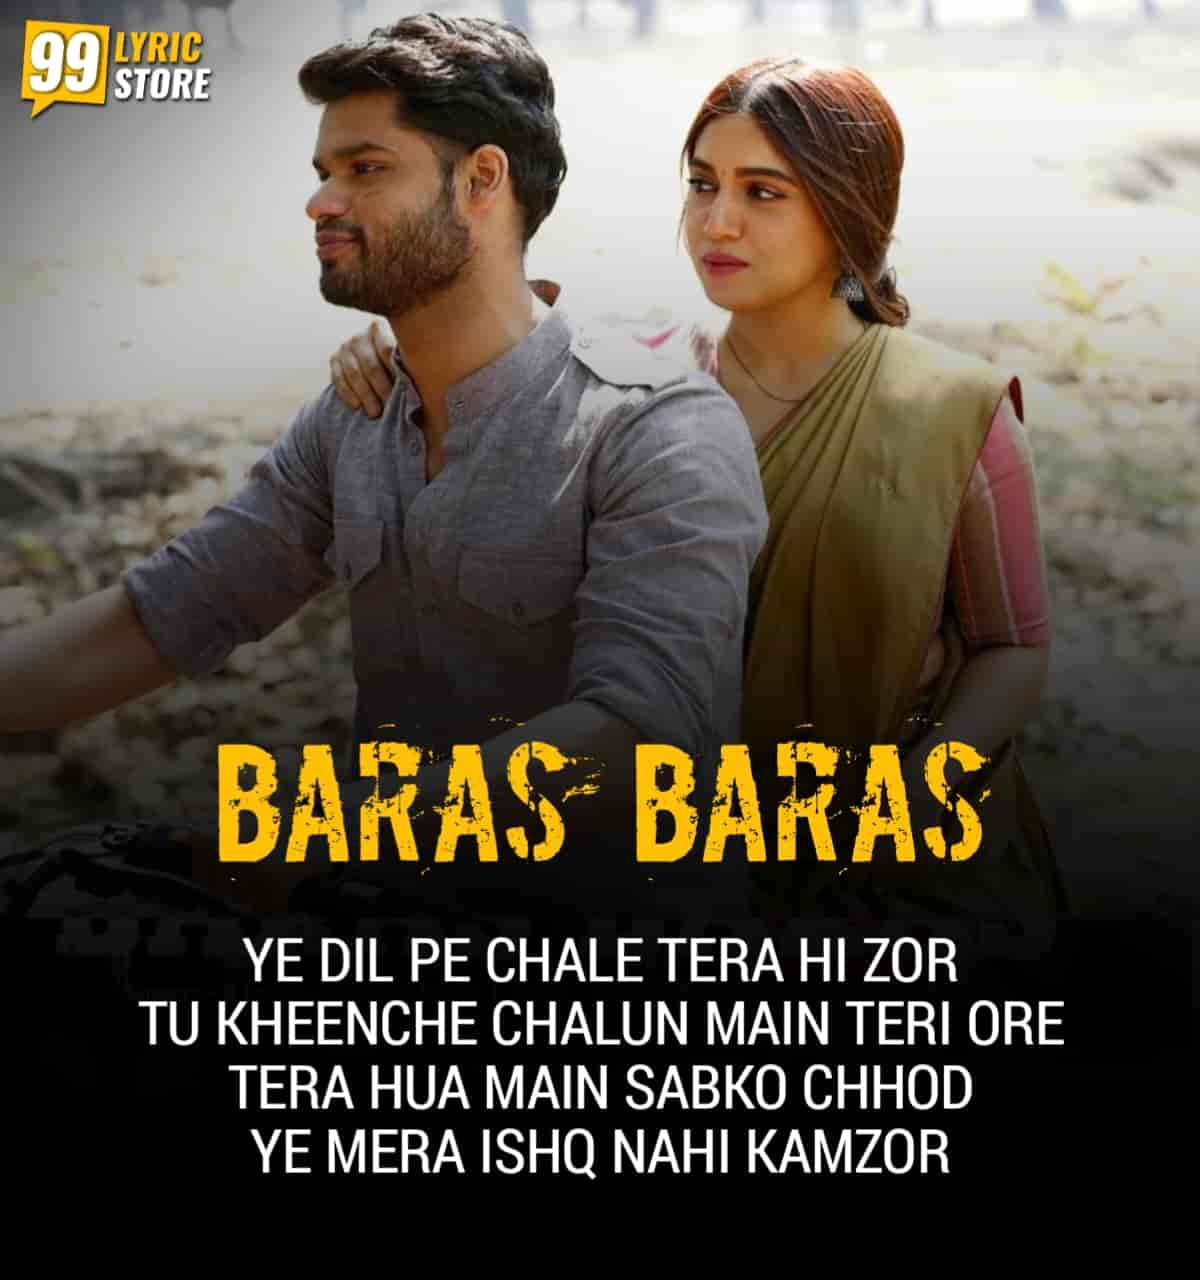 Baras Baras Hindi Song Image Features Bhumi Padnekar from movie Durgamati